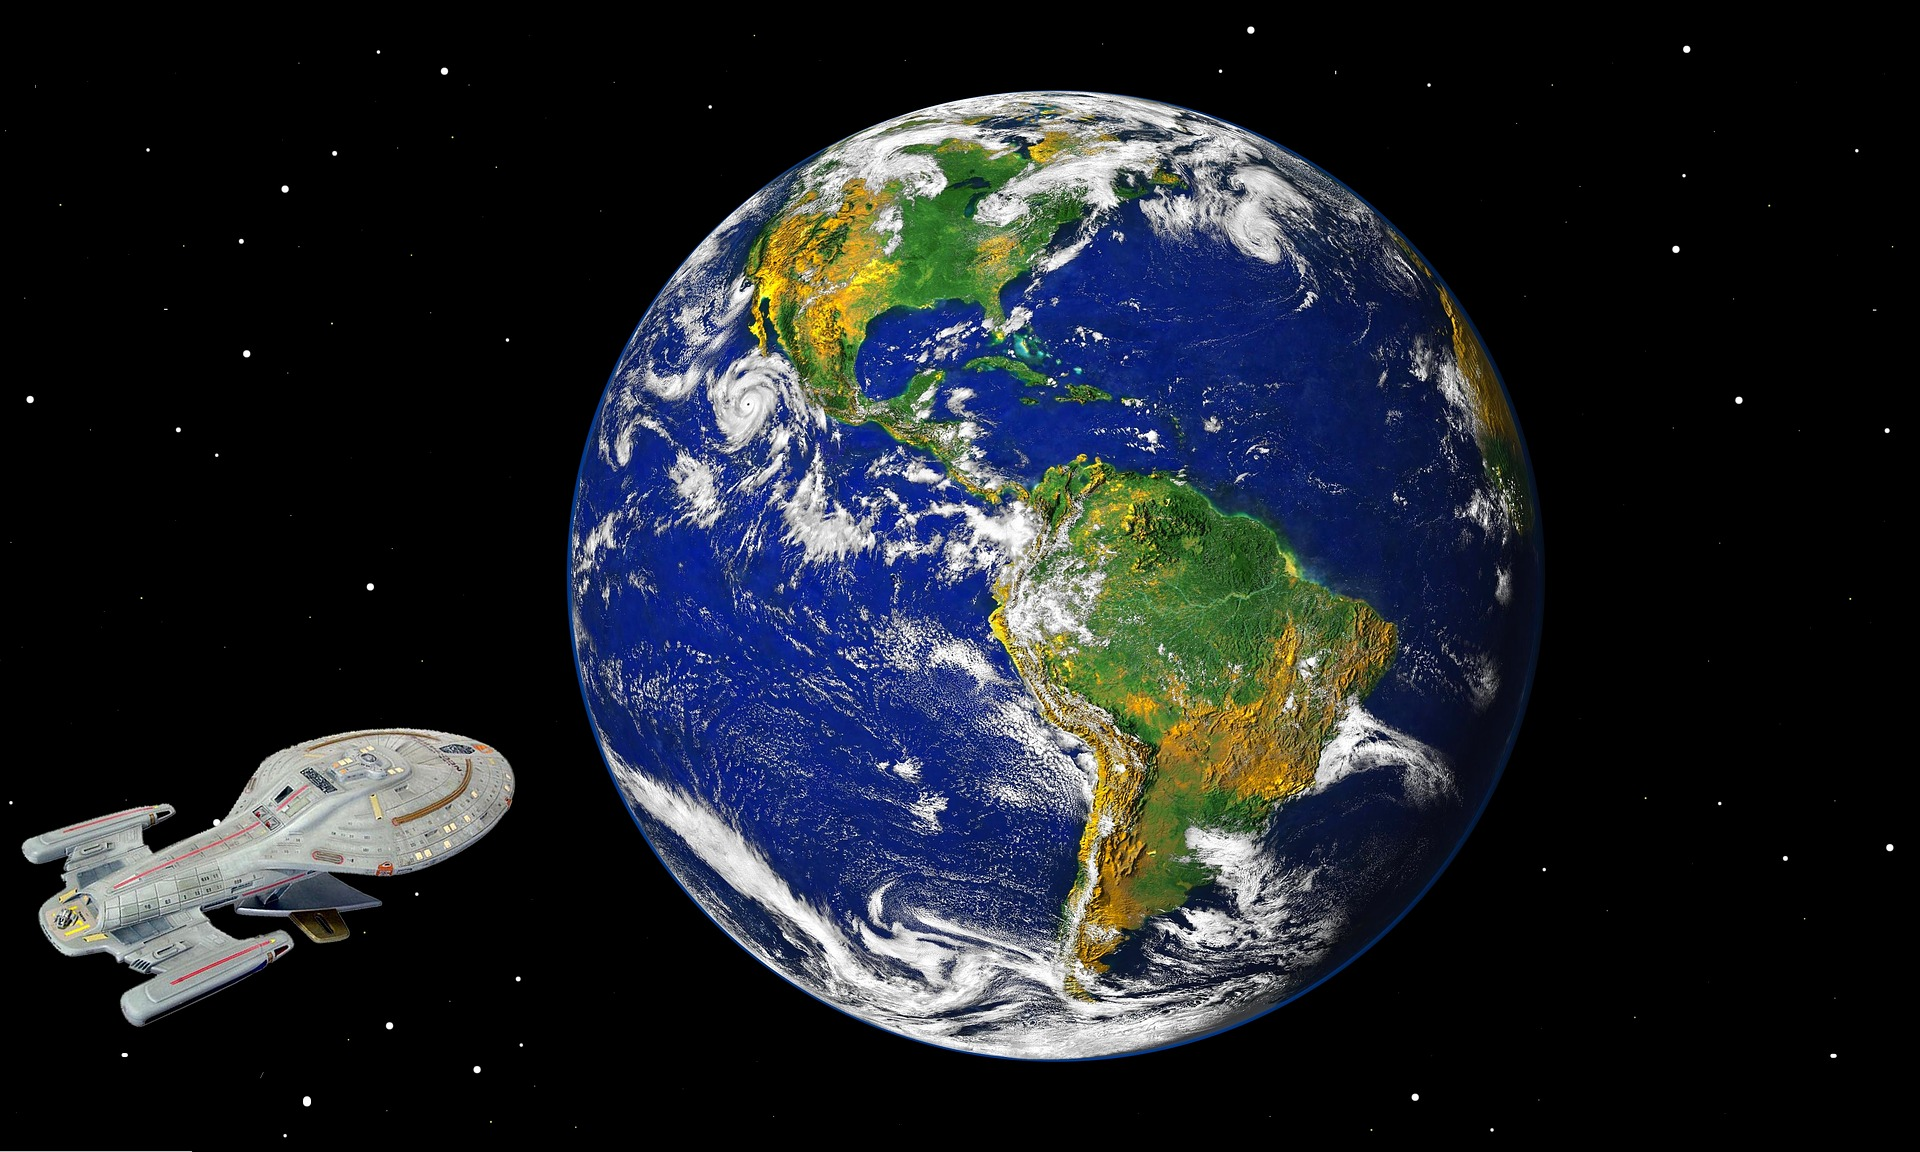 Earth from space, with a space ship approaching